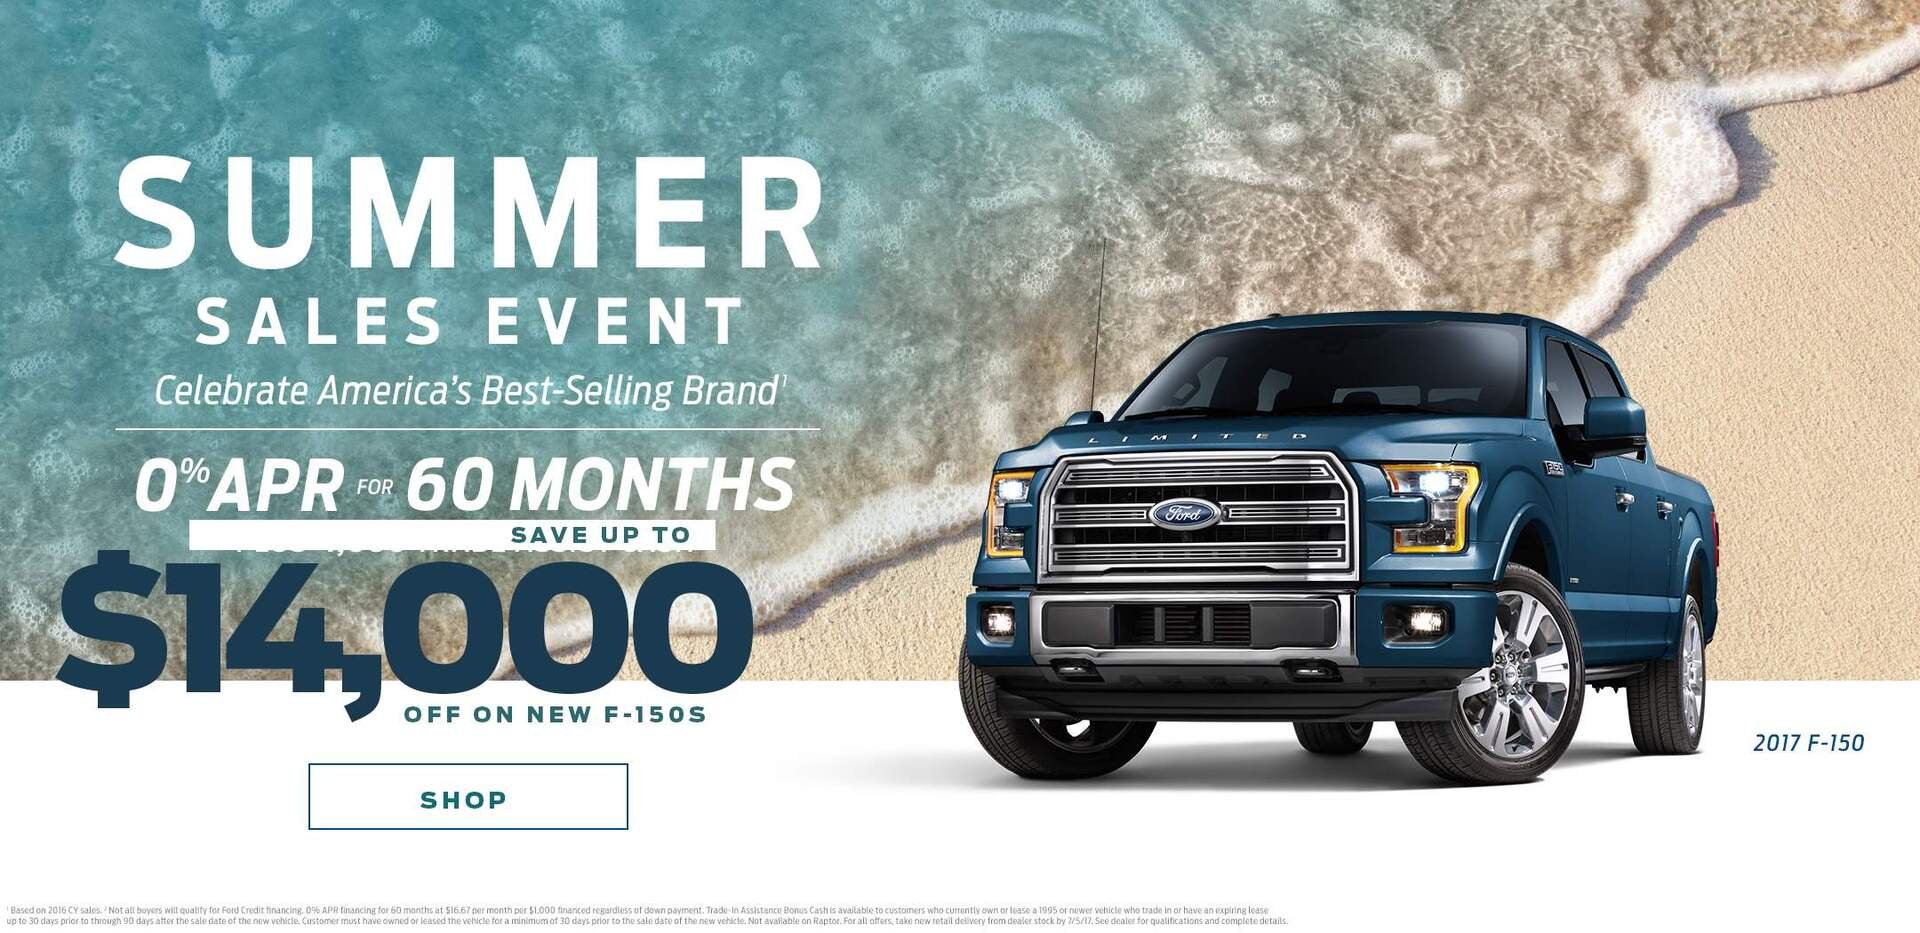 Save up to $14,000 off on Ford F150s